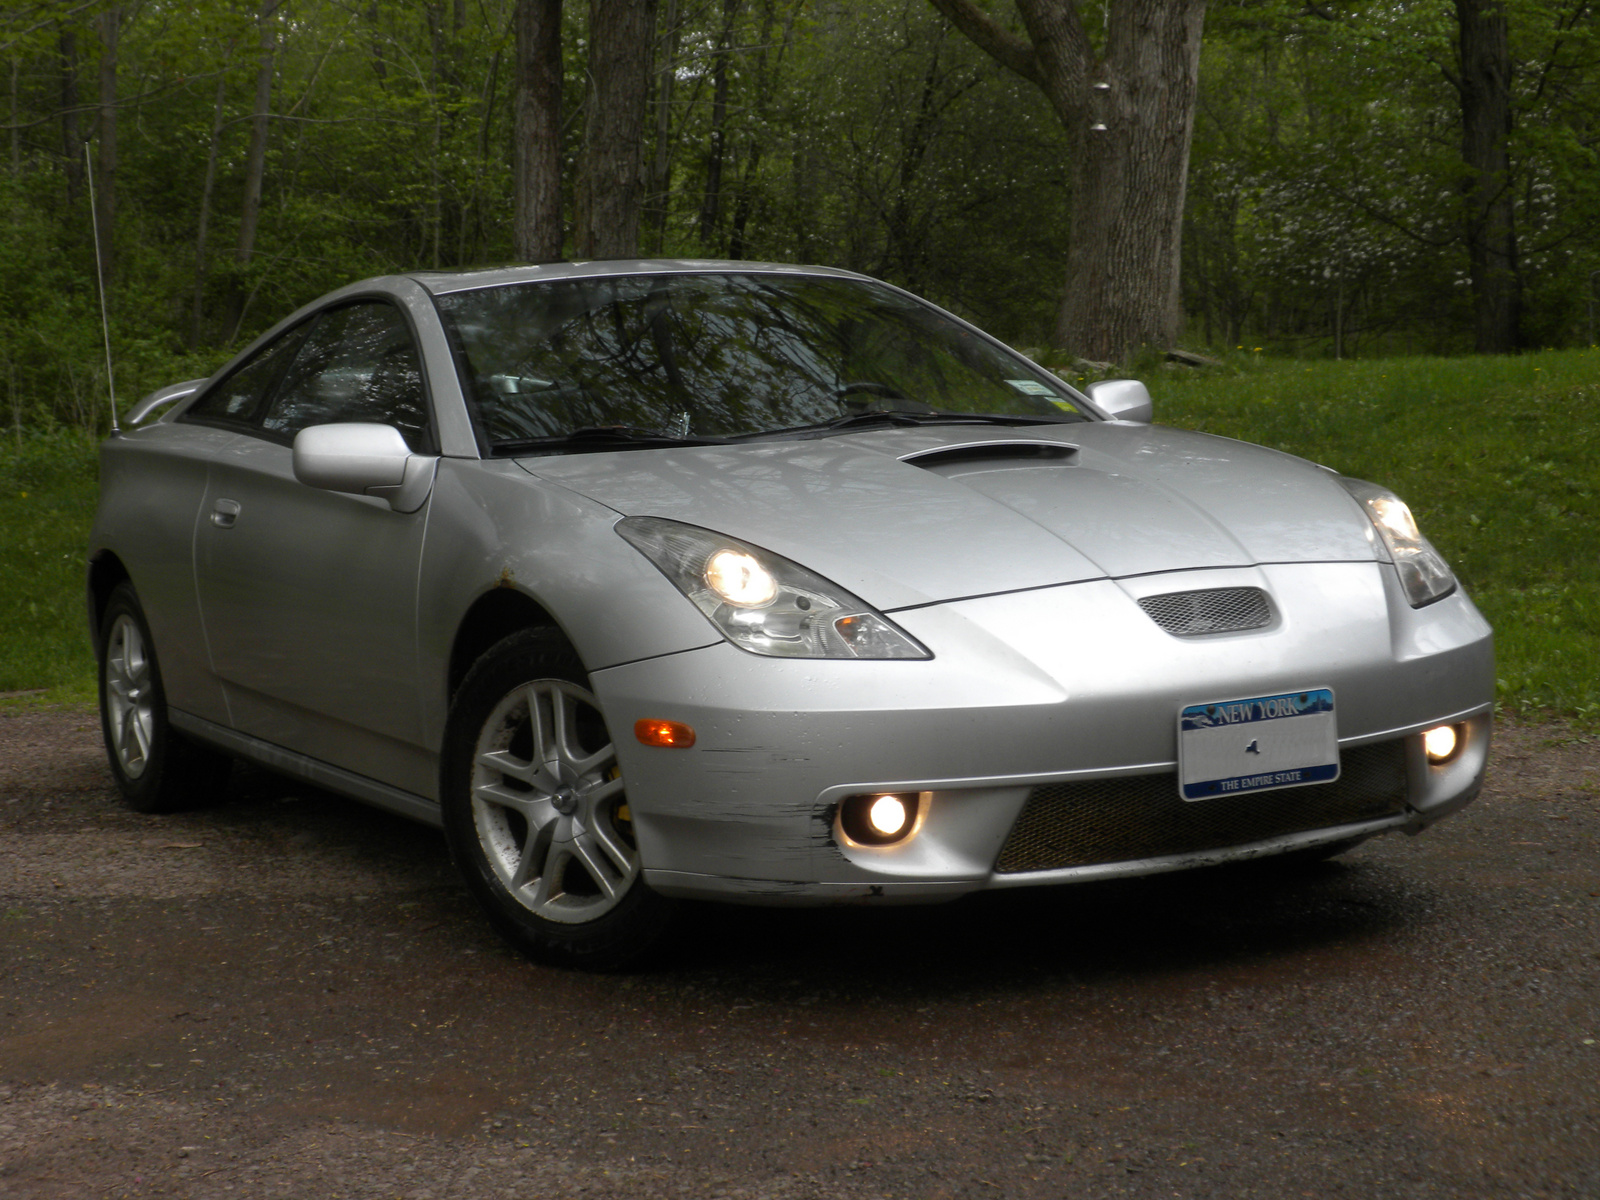 2000 toyota celica used cars for sale carsforsalecom html autos weblog. Black Bedroom Furniture Sets. Home Design Ideas